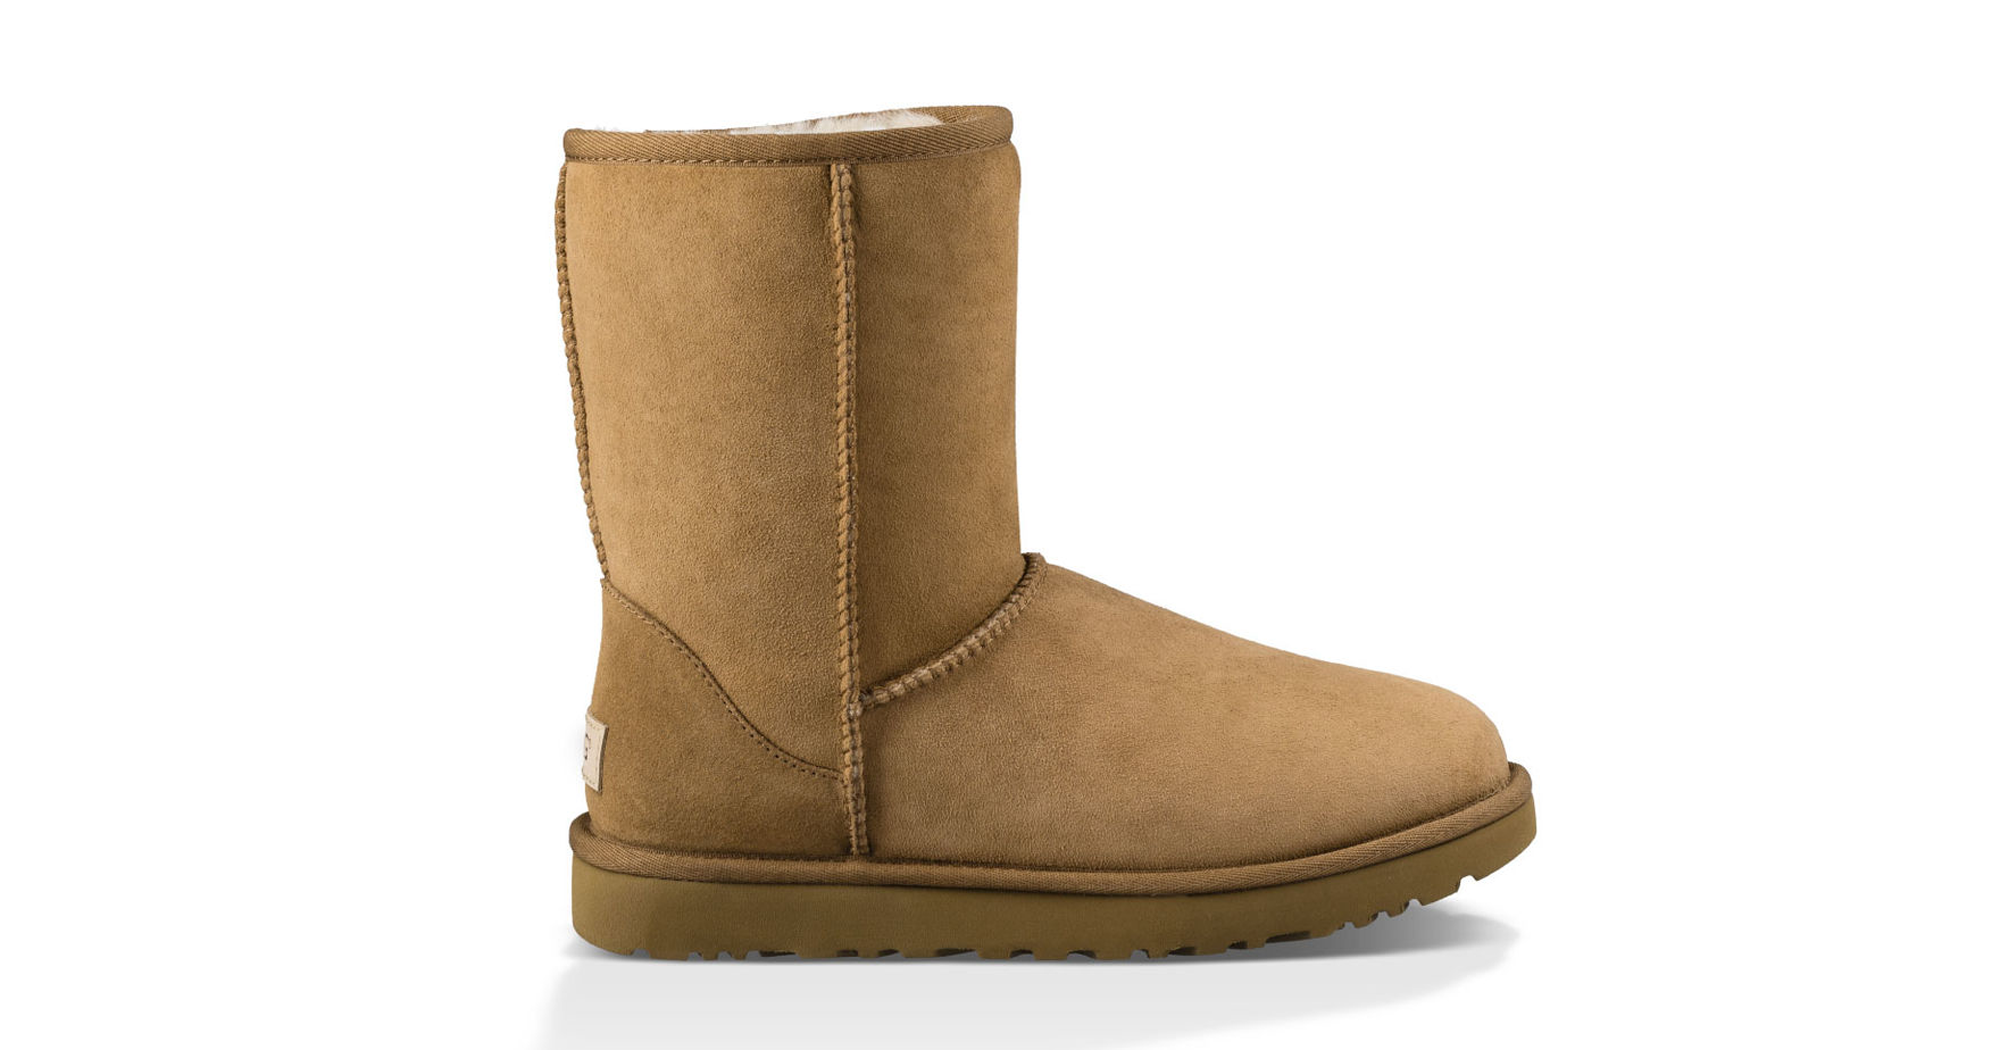 New Ugg Stain Water Repellent Boot, Classic 2